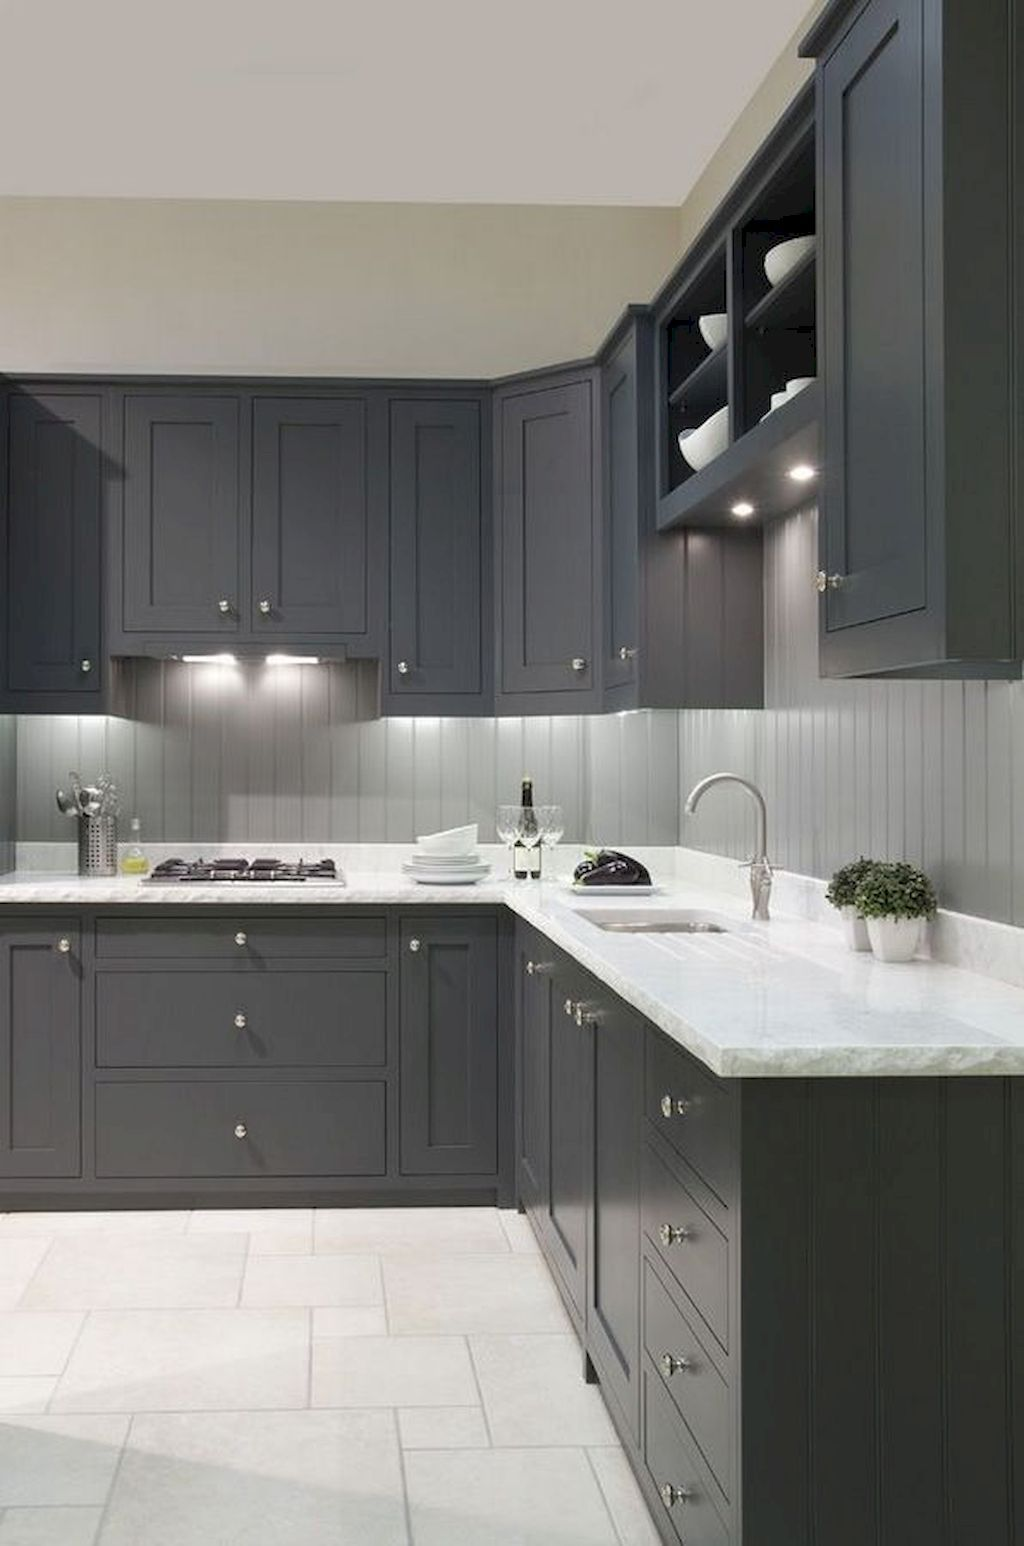 Fashionable Designs In Kitchen Cupboards For You To Select From Sisustusvinkit Keittio Unelmatalo